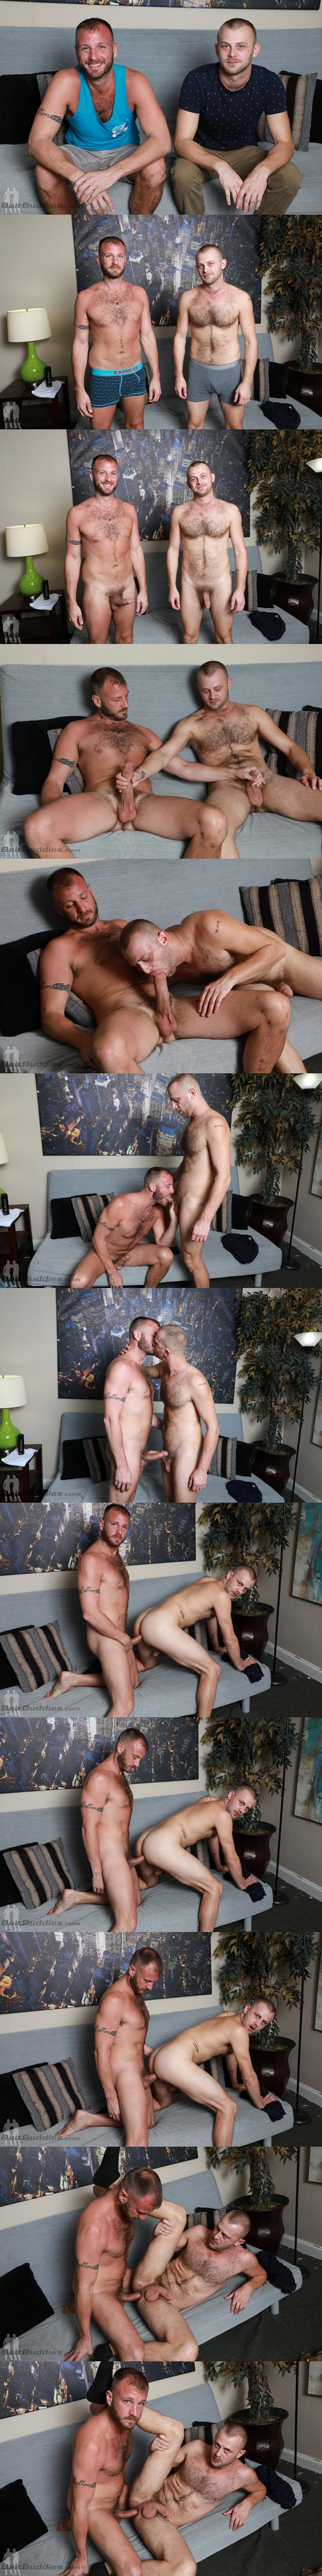 Hung, masculine daddy Chase Ryder barebacks veteran gay porn star Chandler Scott before they shoot their hot loads at Baitbuddies